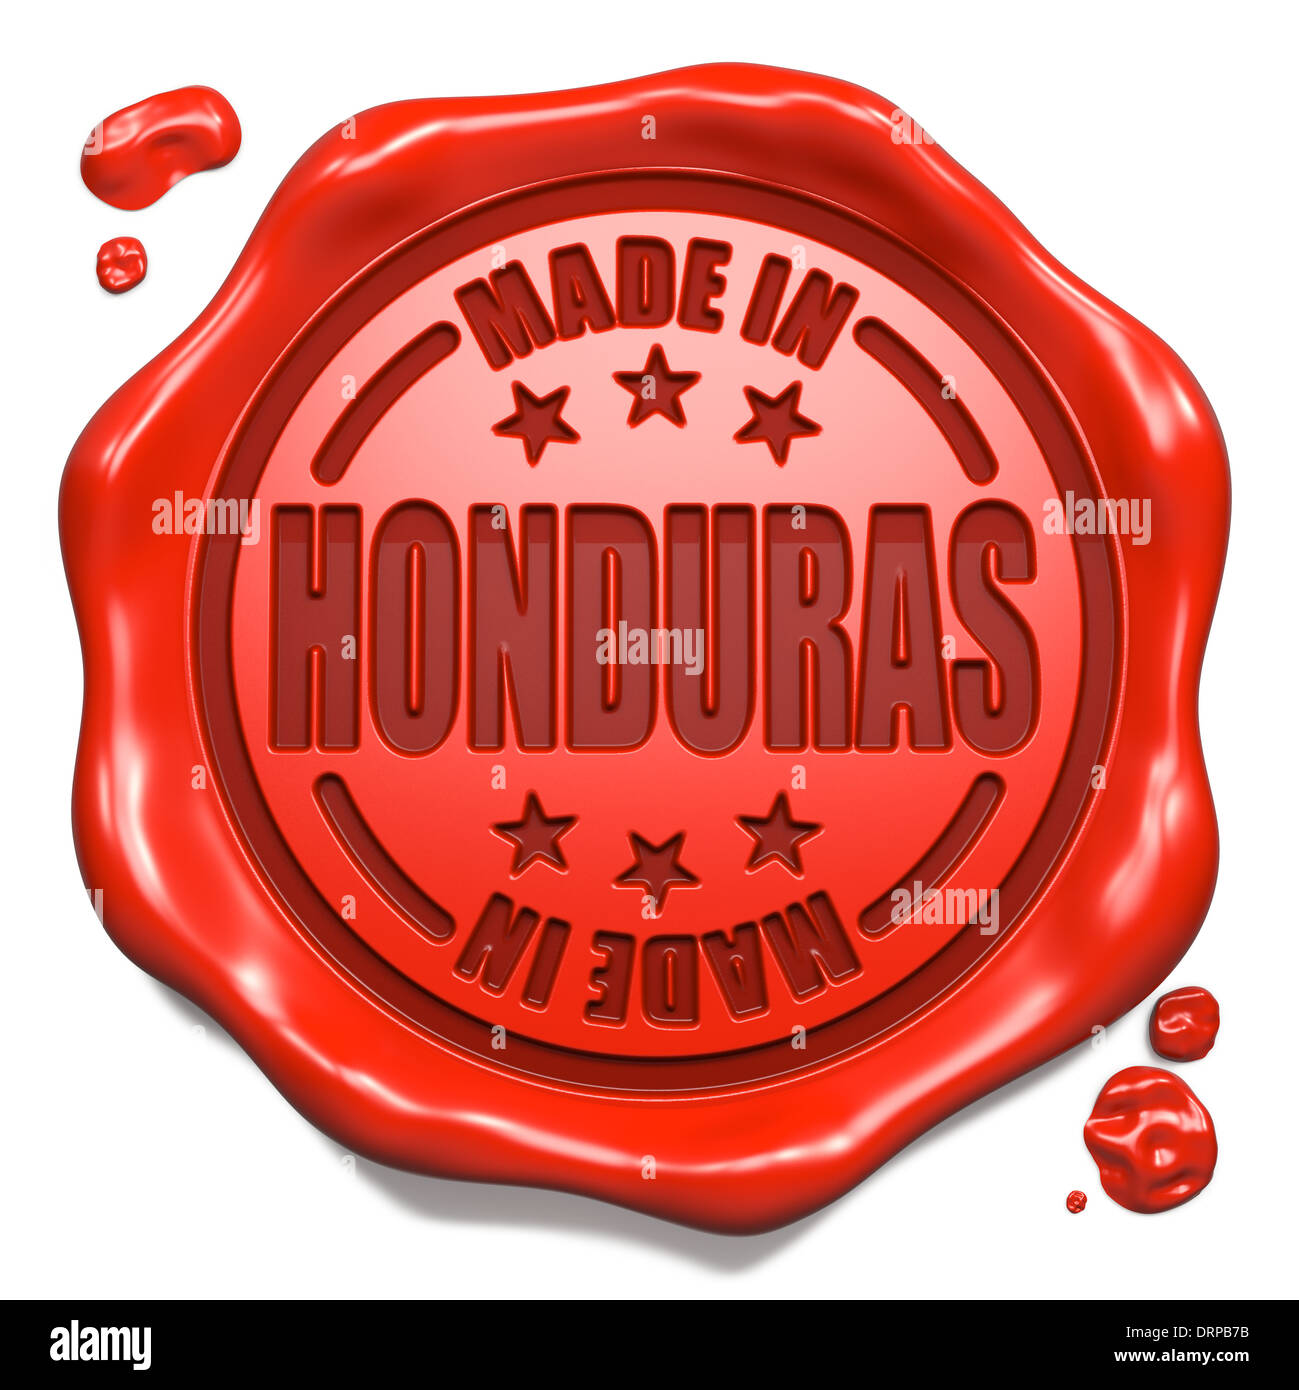 Made in Honduras - Stamp on Red Wax Seal. Stock Photo